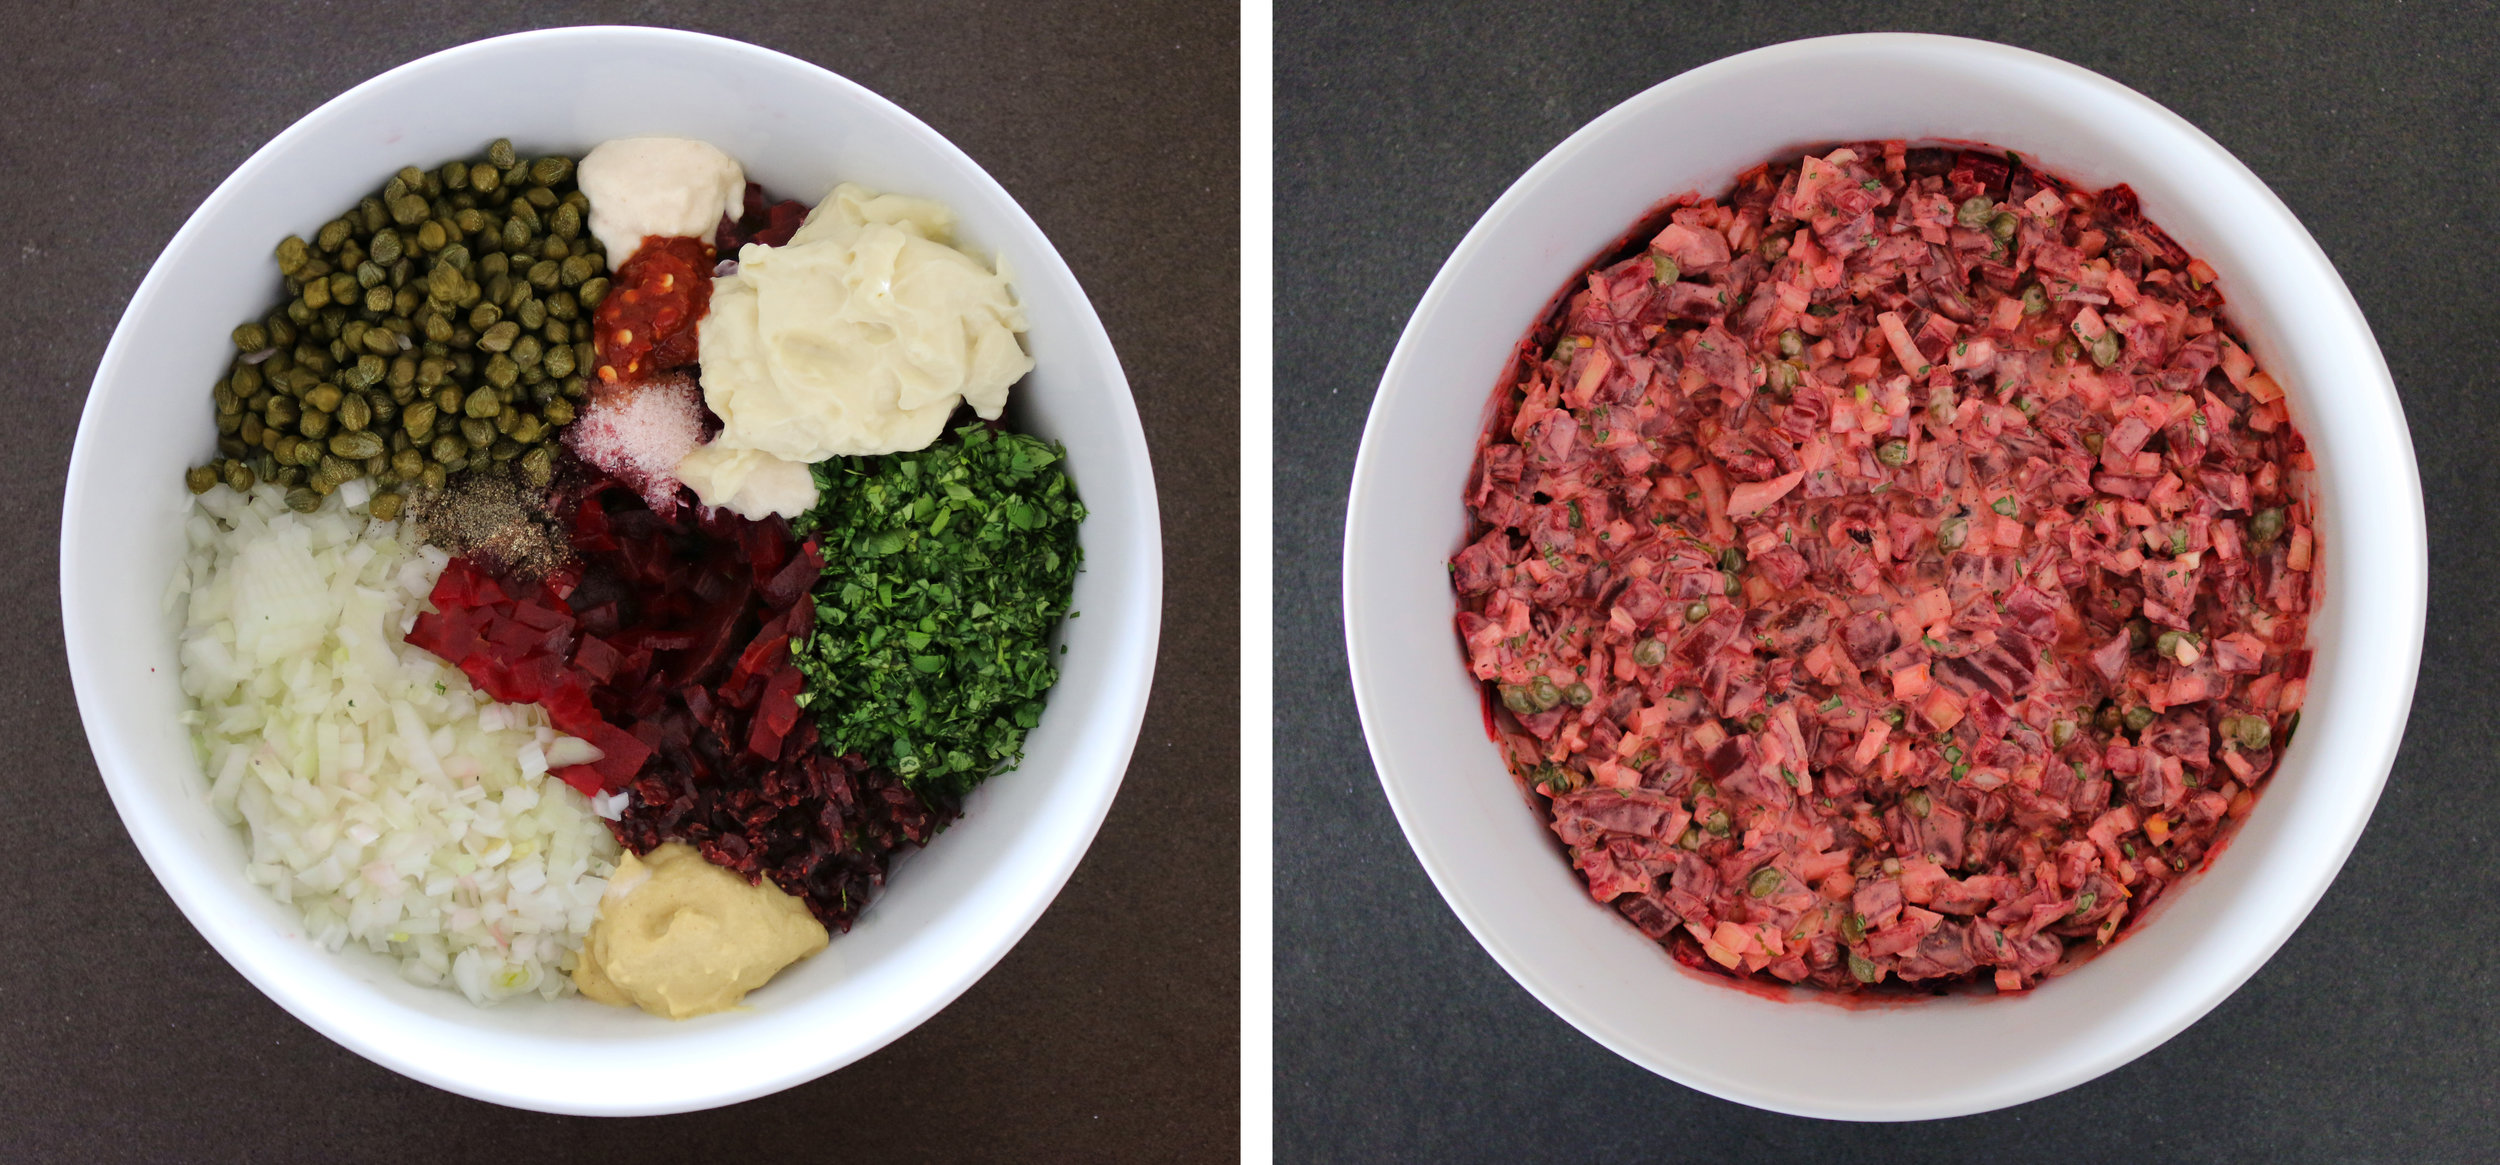 gourmandesante-beetroot-tartare-vegan-recipe